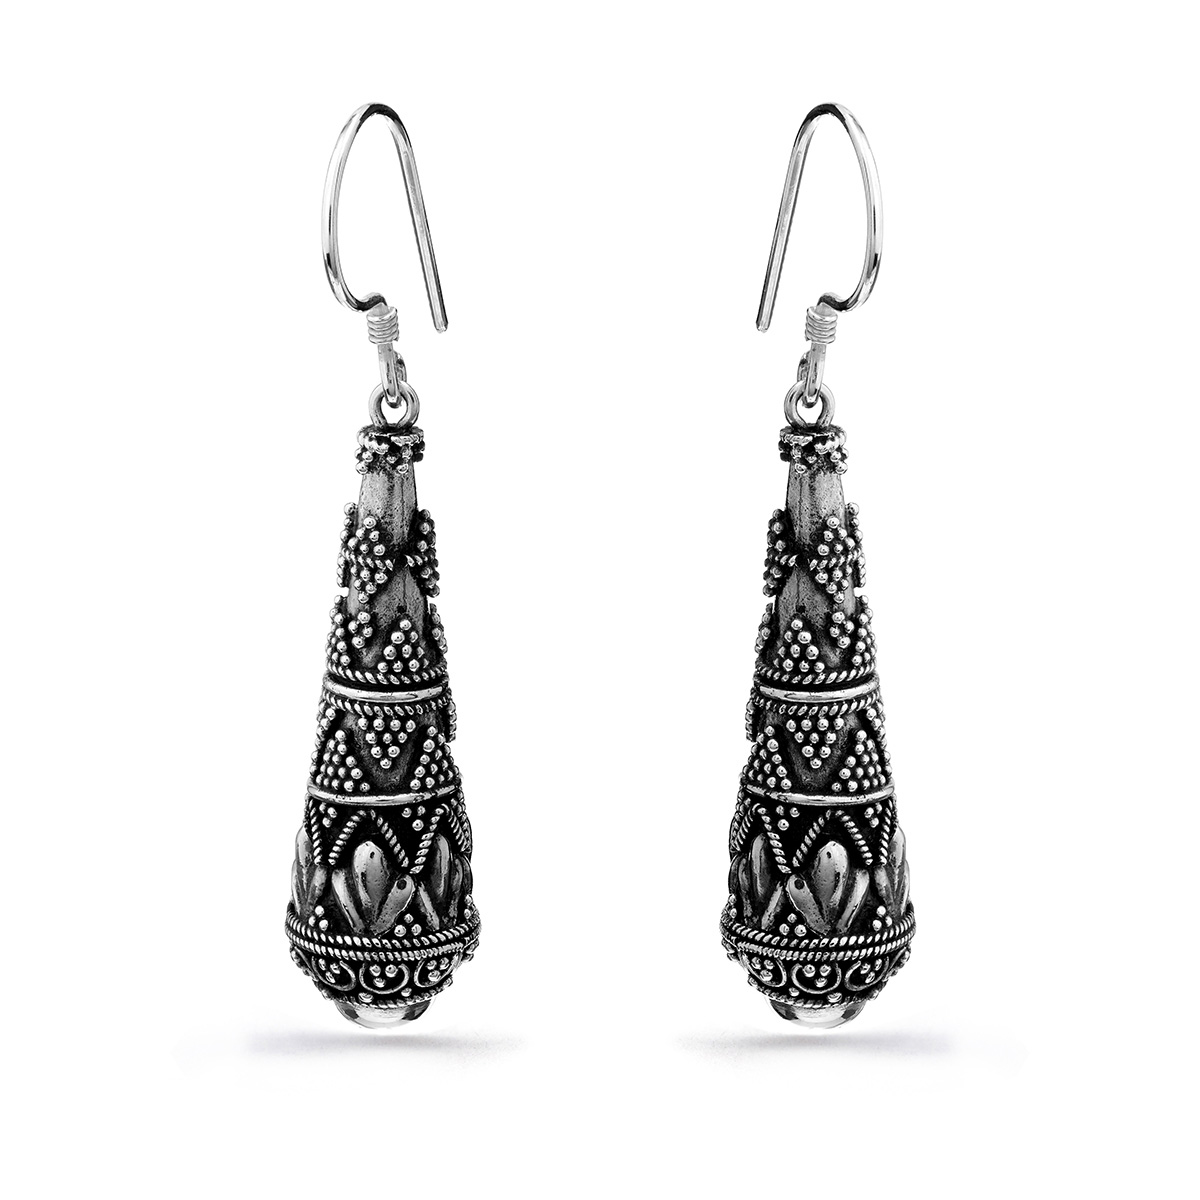 Ubud Silver Earrings - Handcrafted Sterling Silver Jewellery from Bali by Nusa